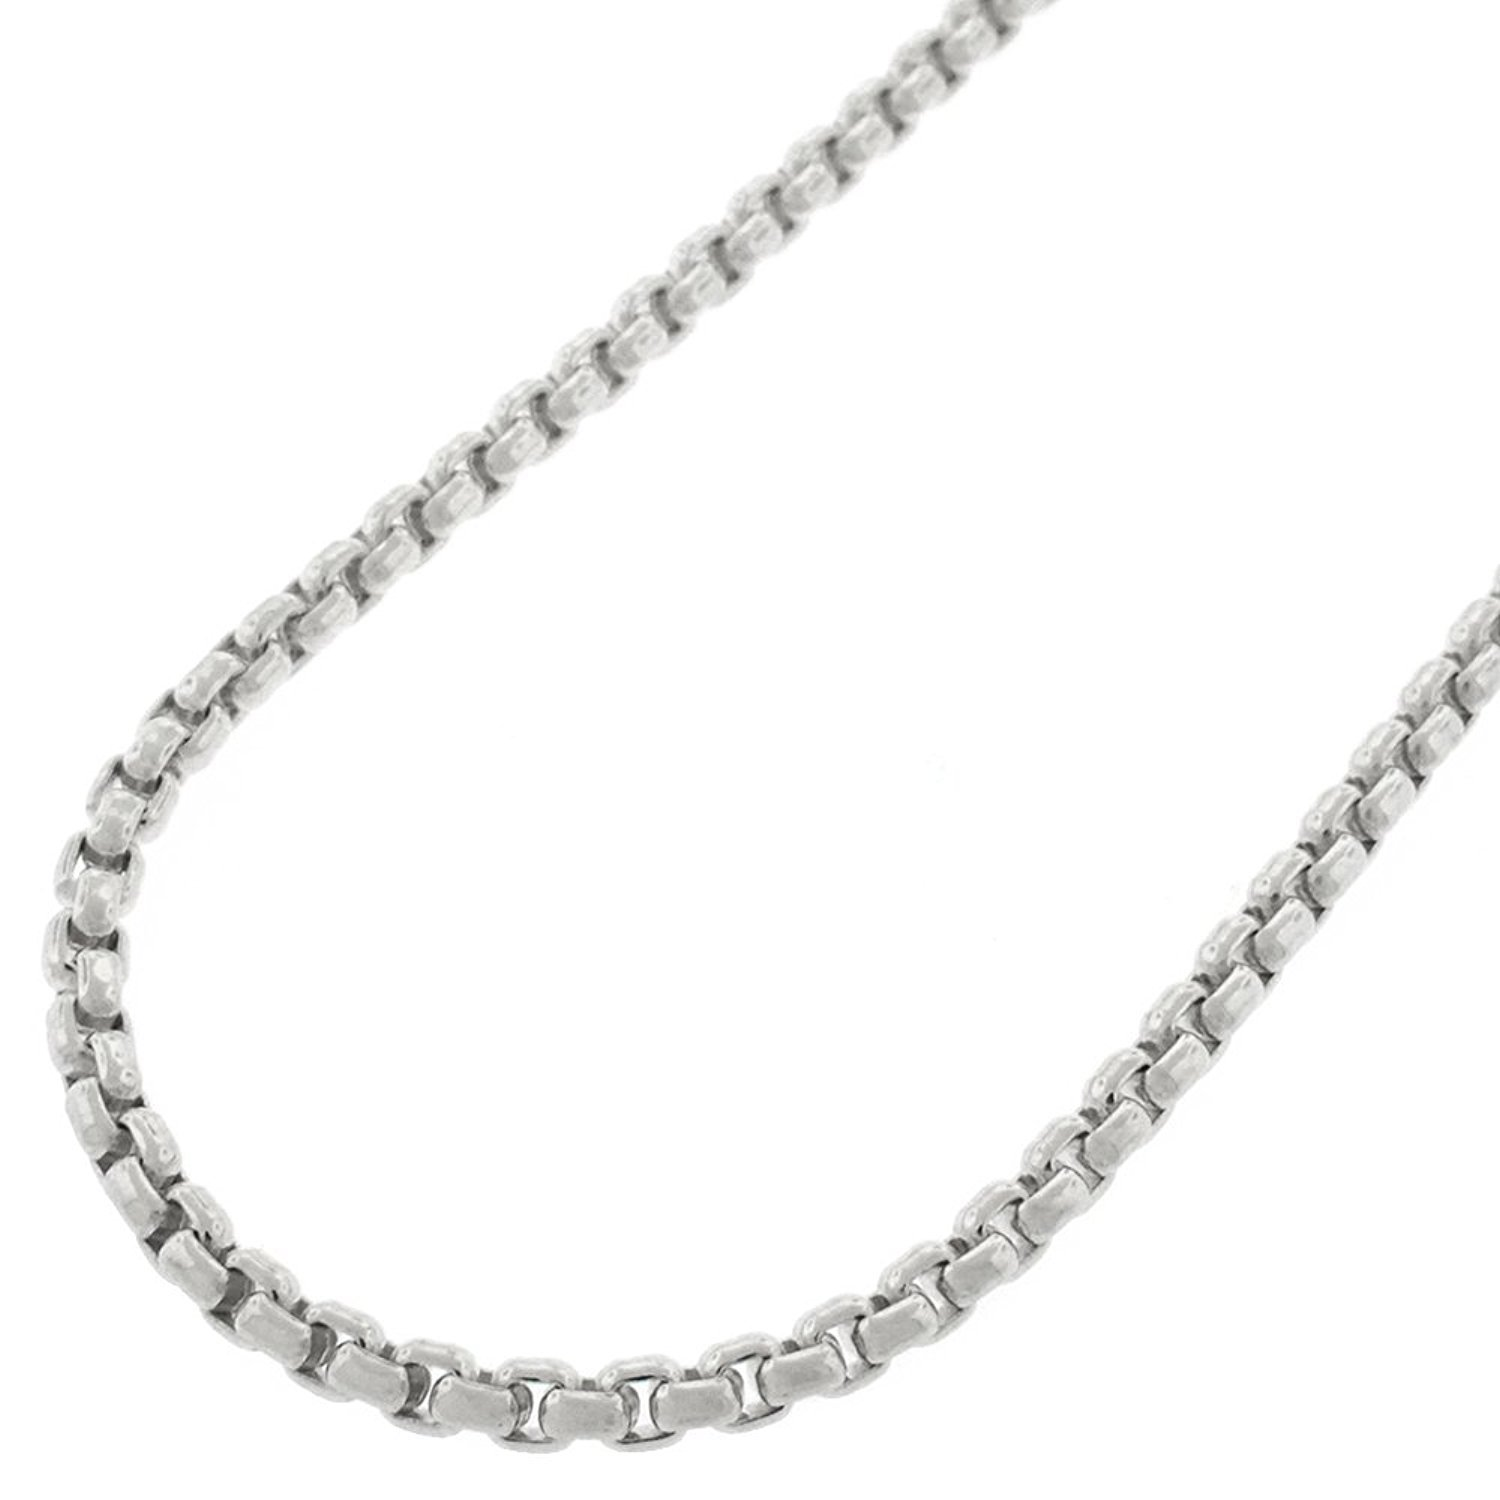 Sterling Silver Italian 2.5mm Round Box Link Solid 925 Rhodium Necklace Chain 18'' - 30'' (18)